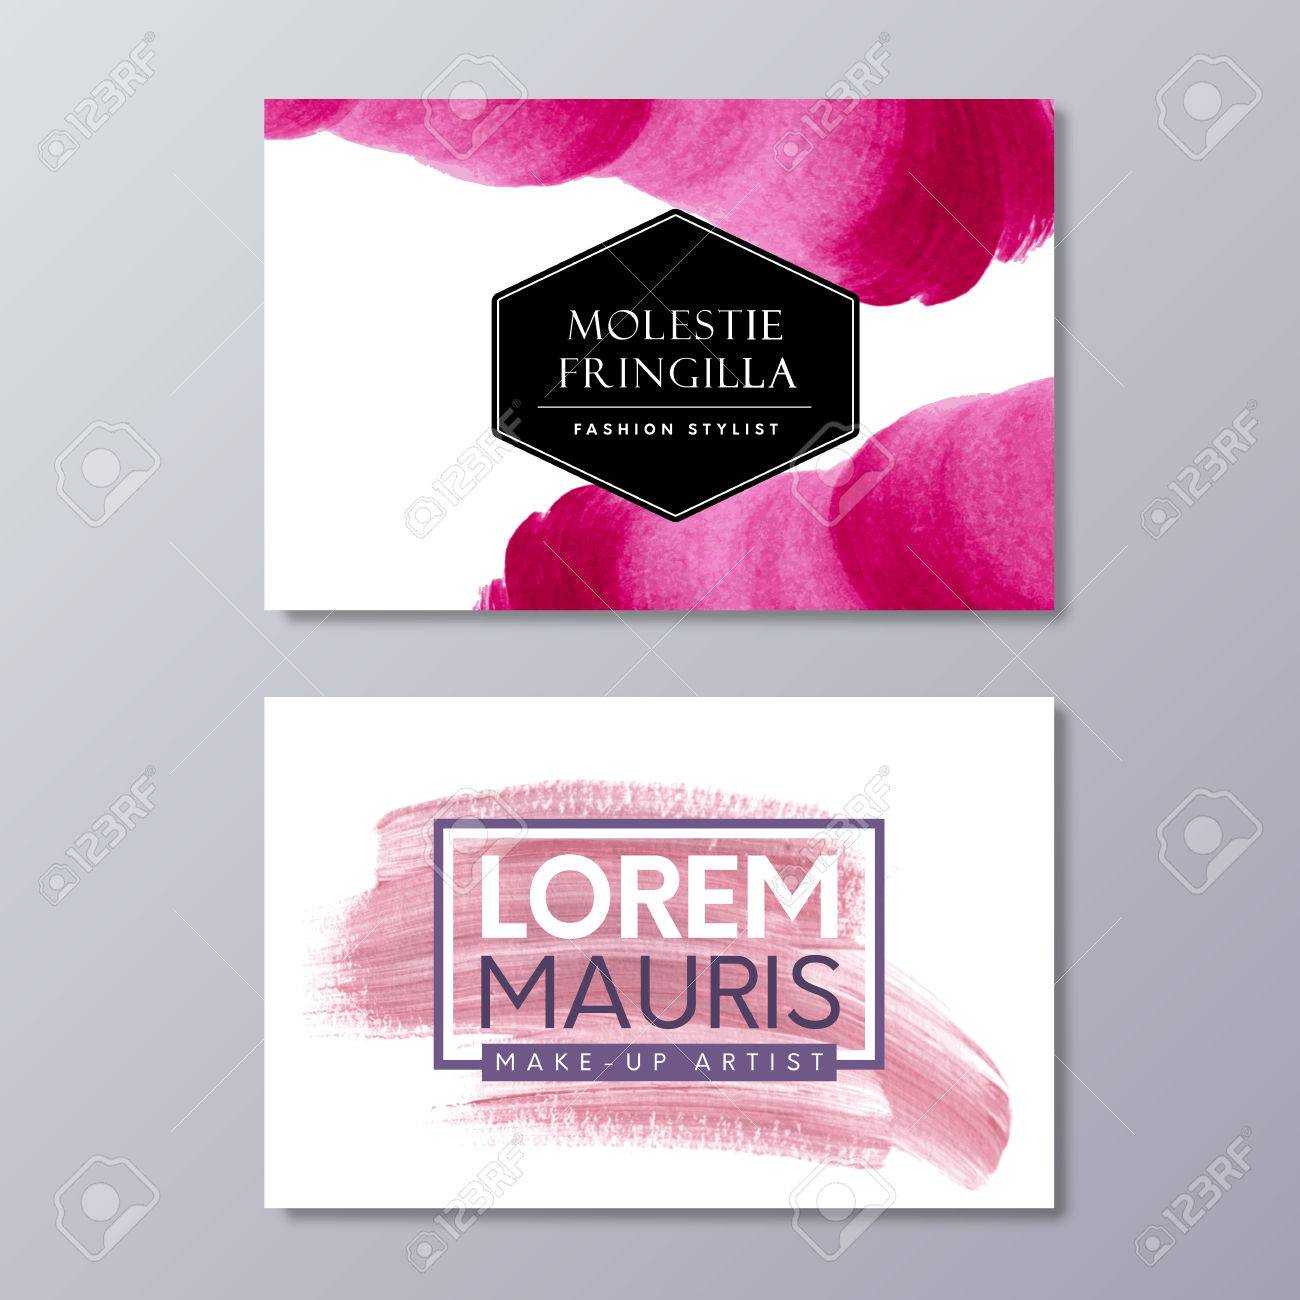 Abstract business card templates for fashion stylist make up abstract business card templates for fashion stylist make up artist or wedding logo cheaphphosting